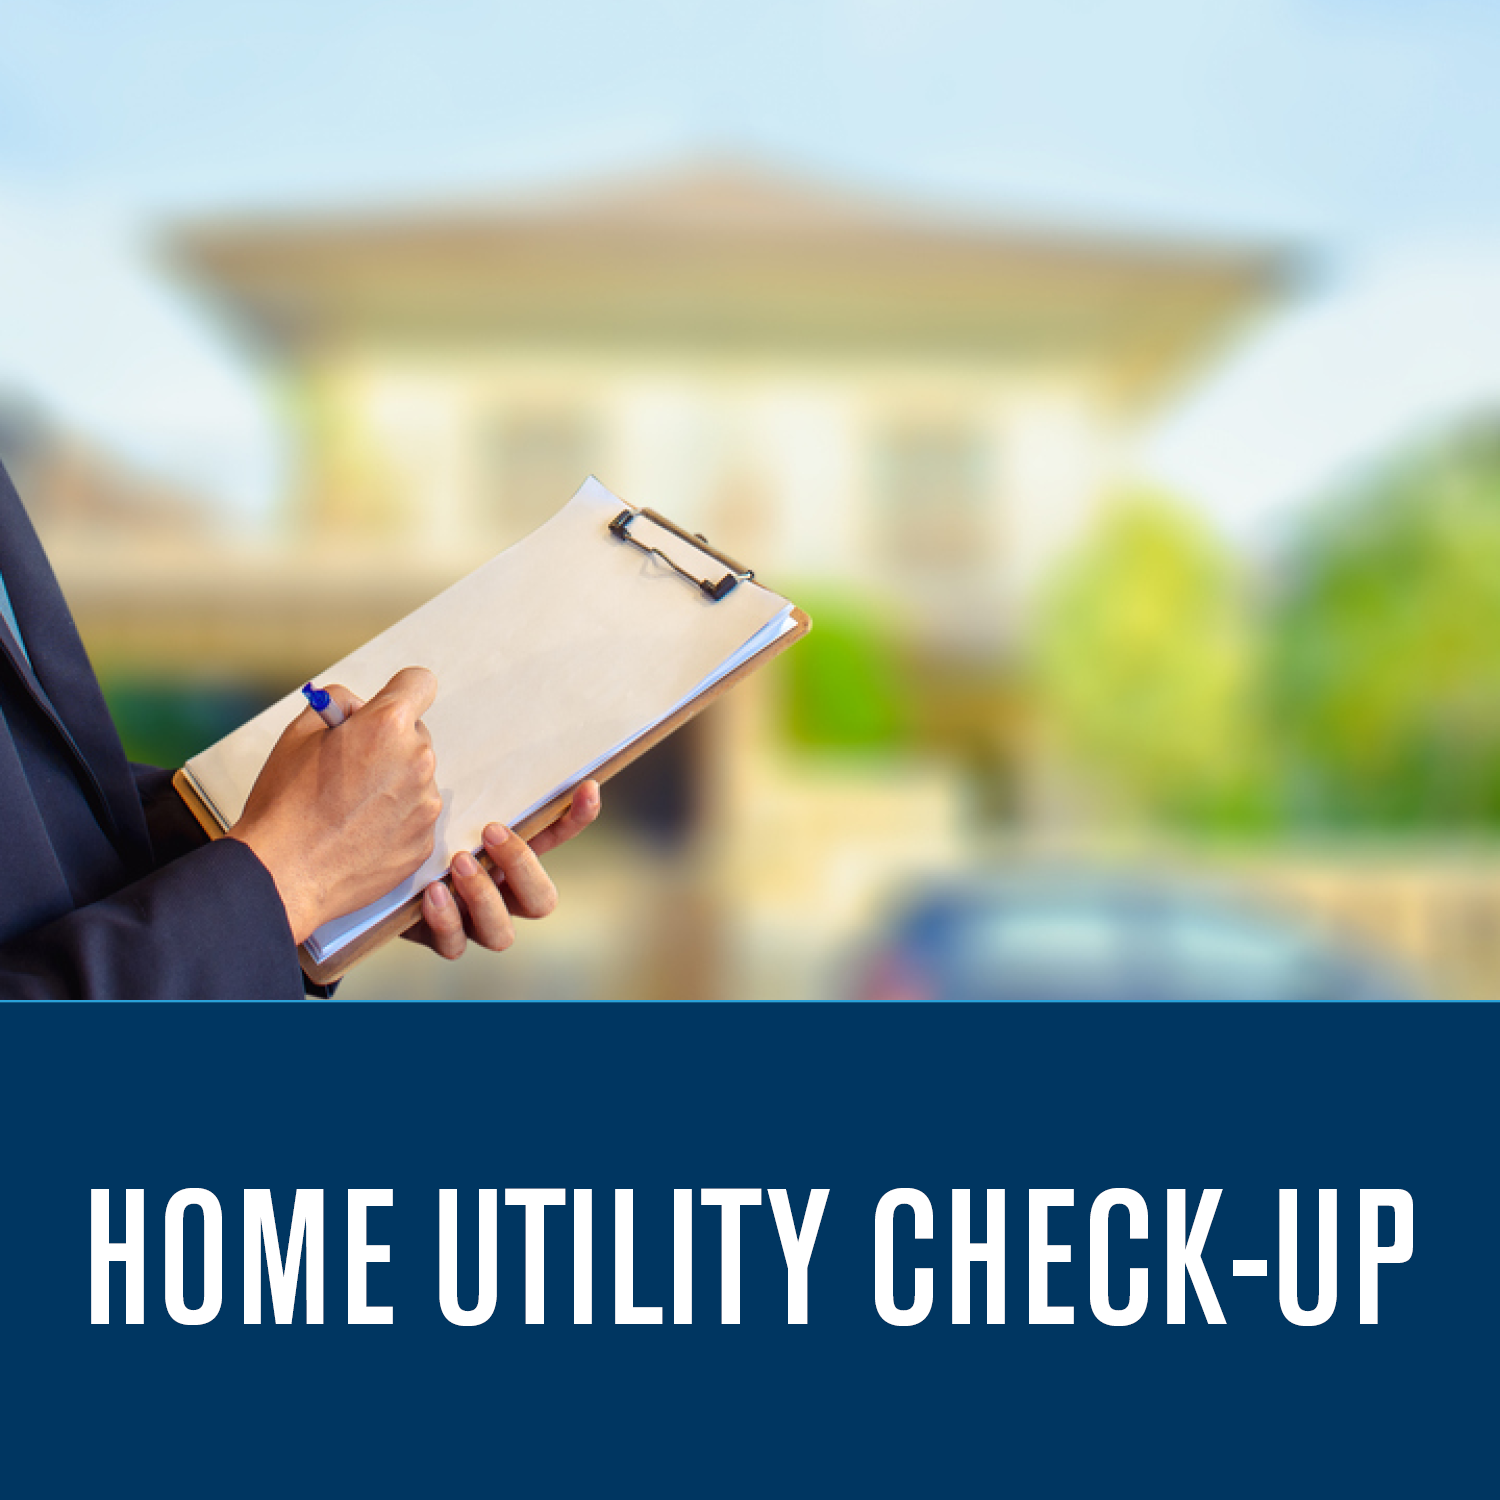 Home Utility Check-Up